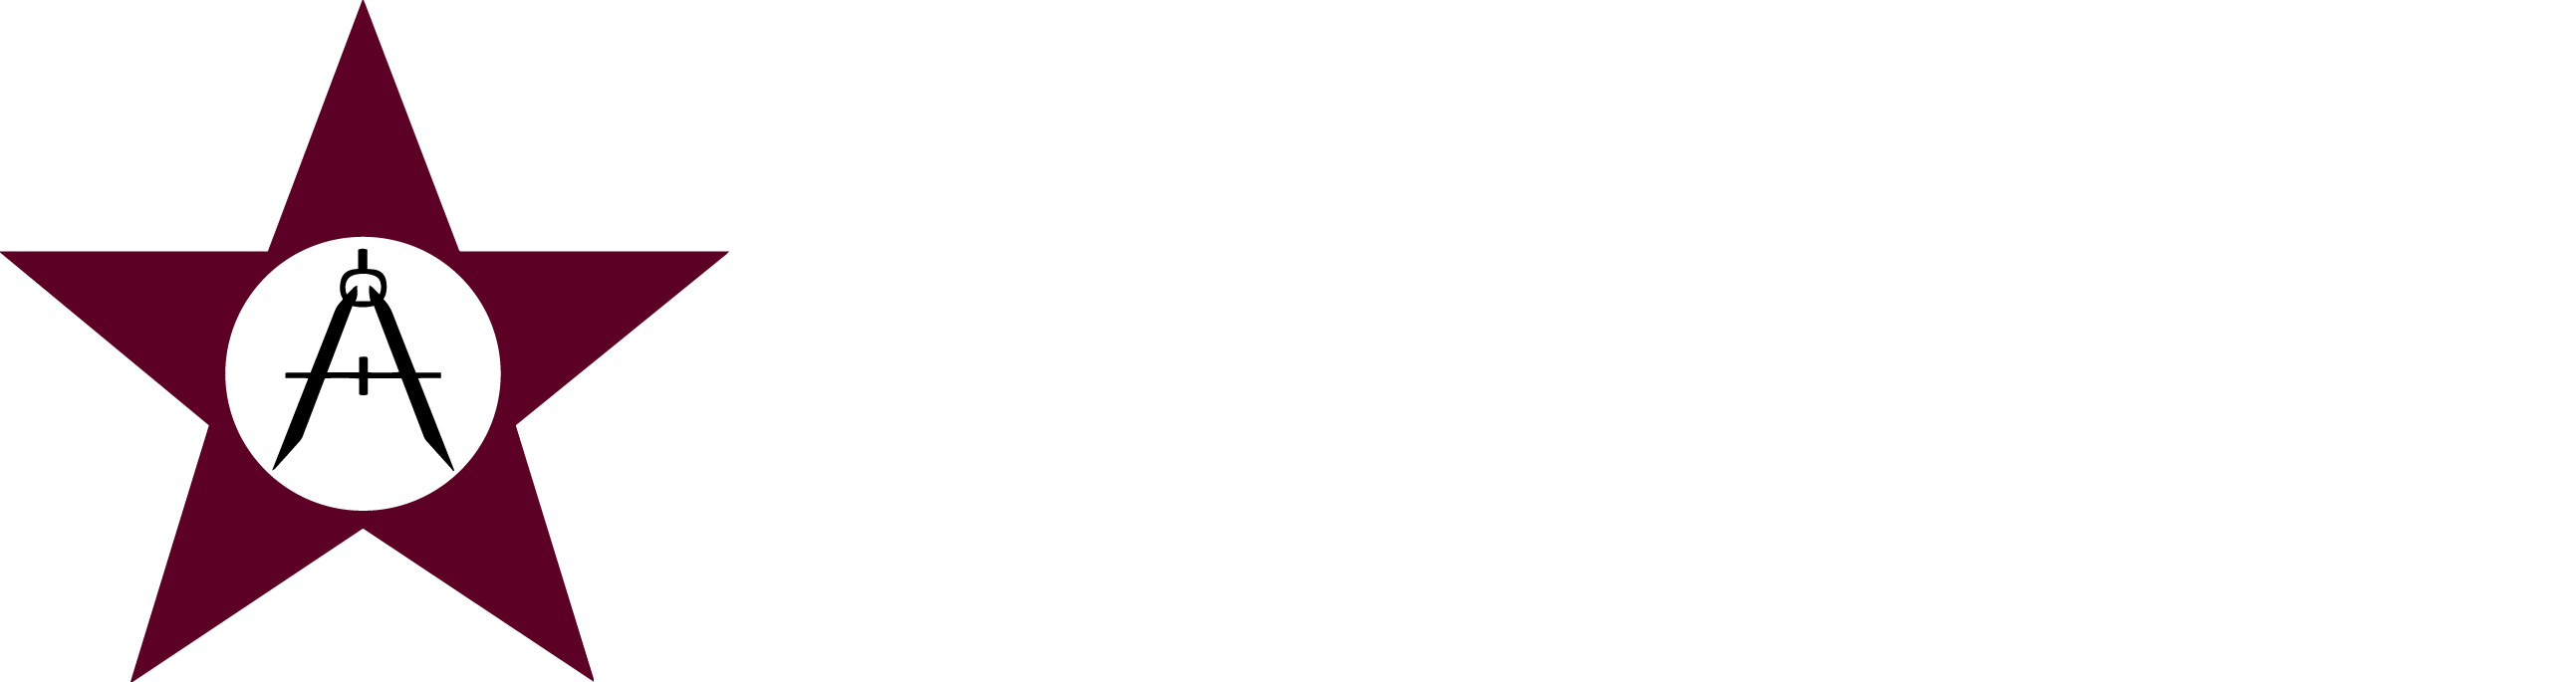 M&S Power Services